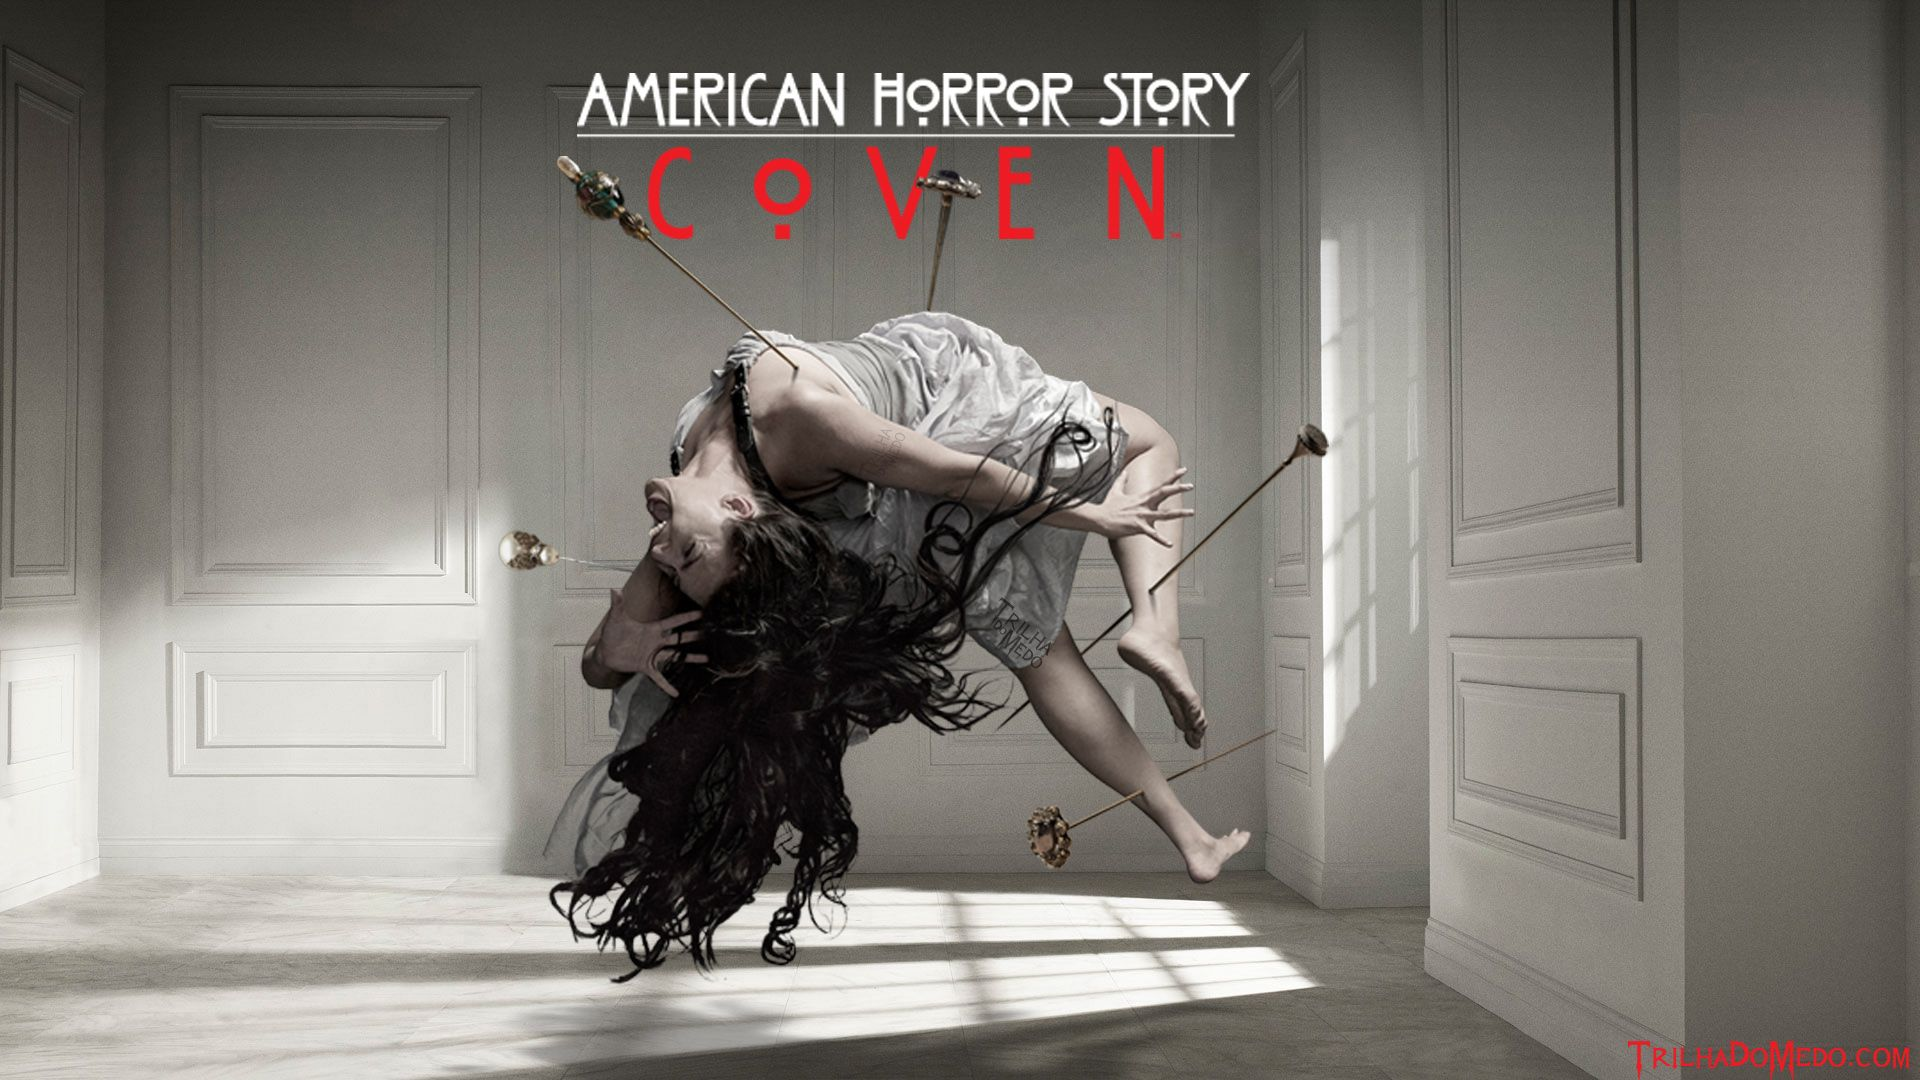 48+] American Horror Story Coven Wallpapers